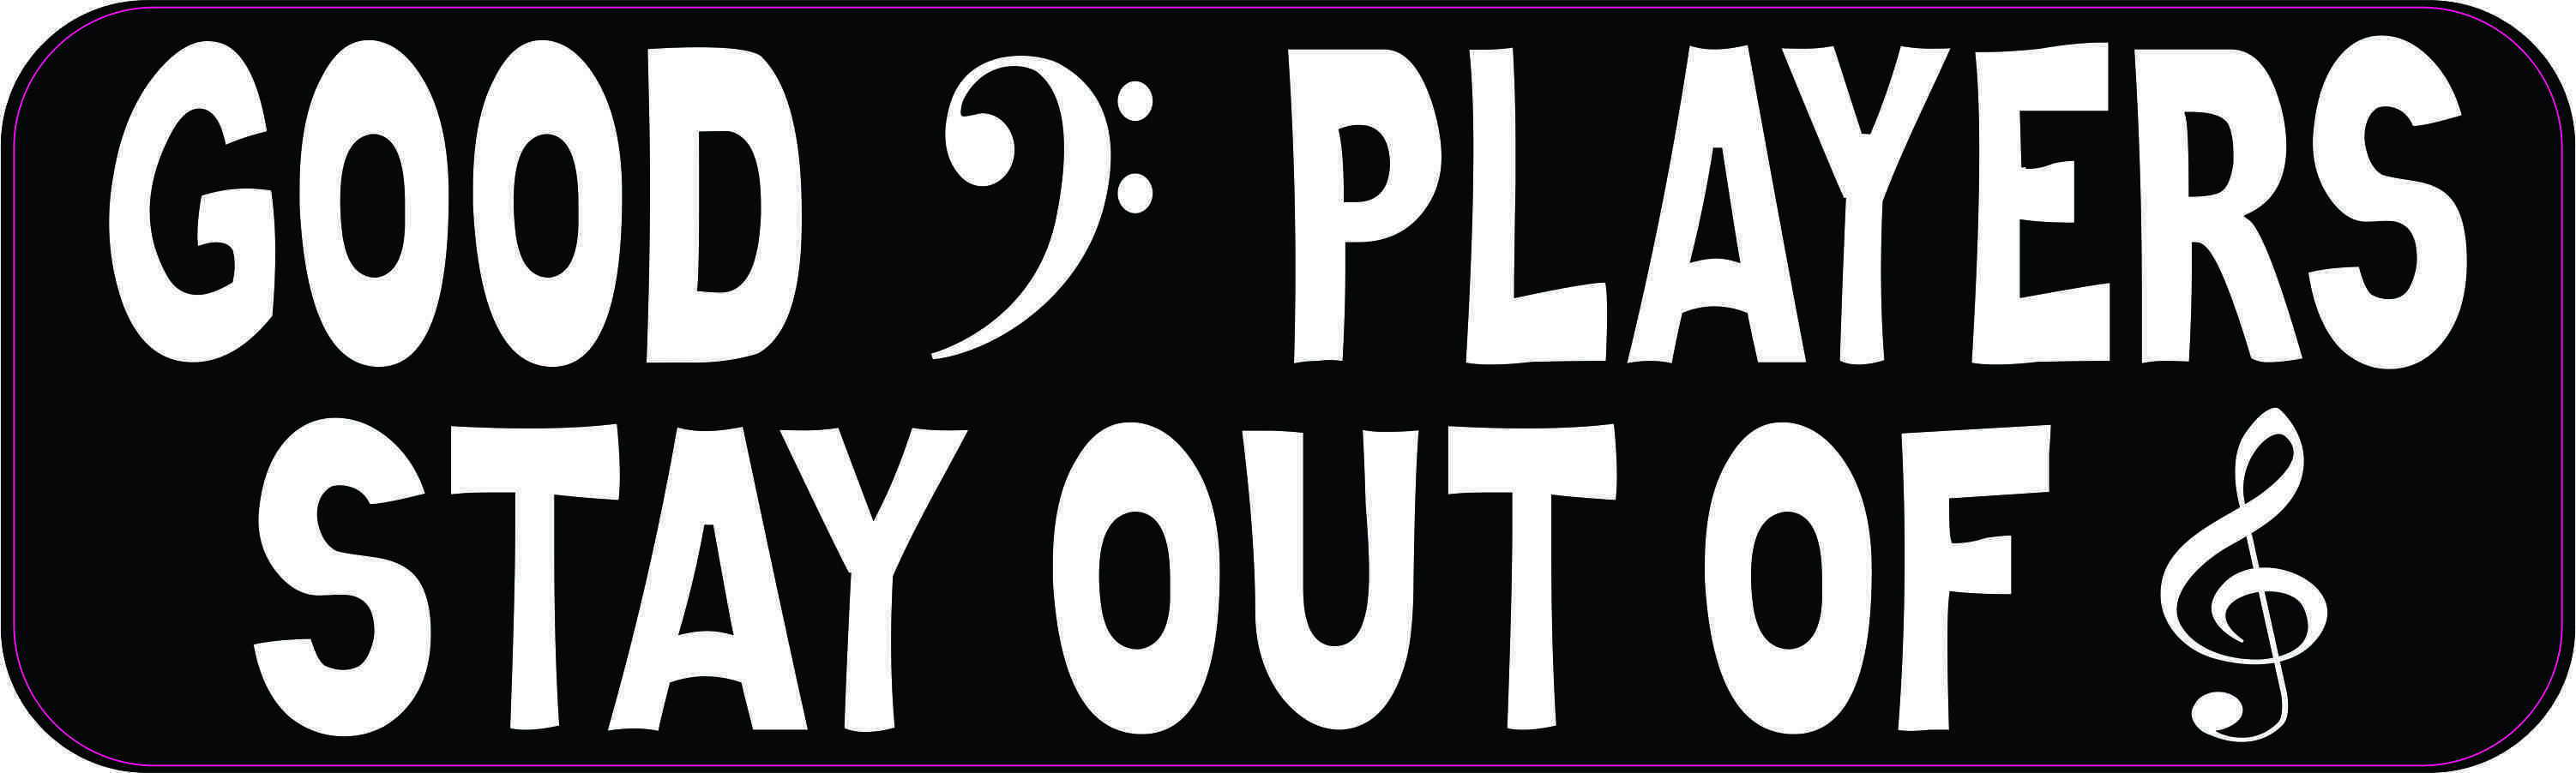 Good Bass Players Stay Out of Treble Bumper Sticker